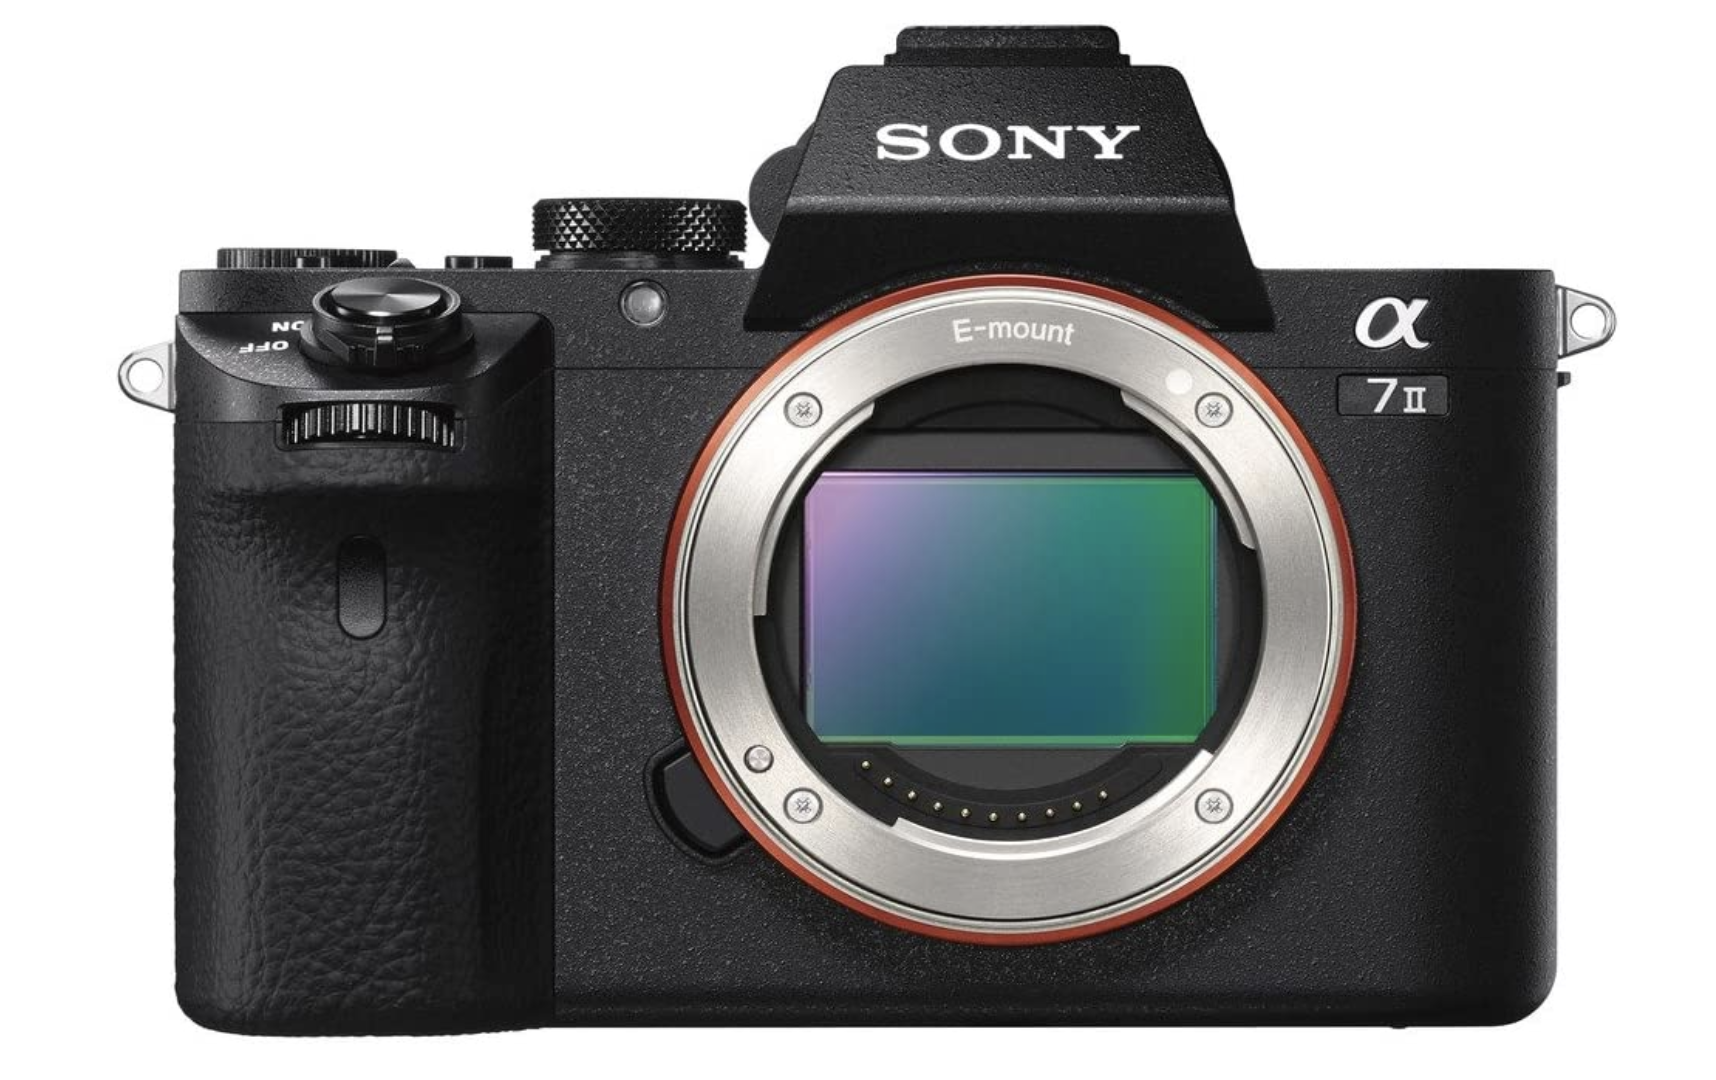 Sony Mirrorless Cameras are up to 45% off for Black Friday deals